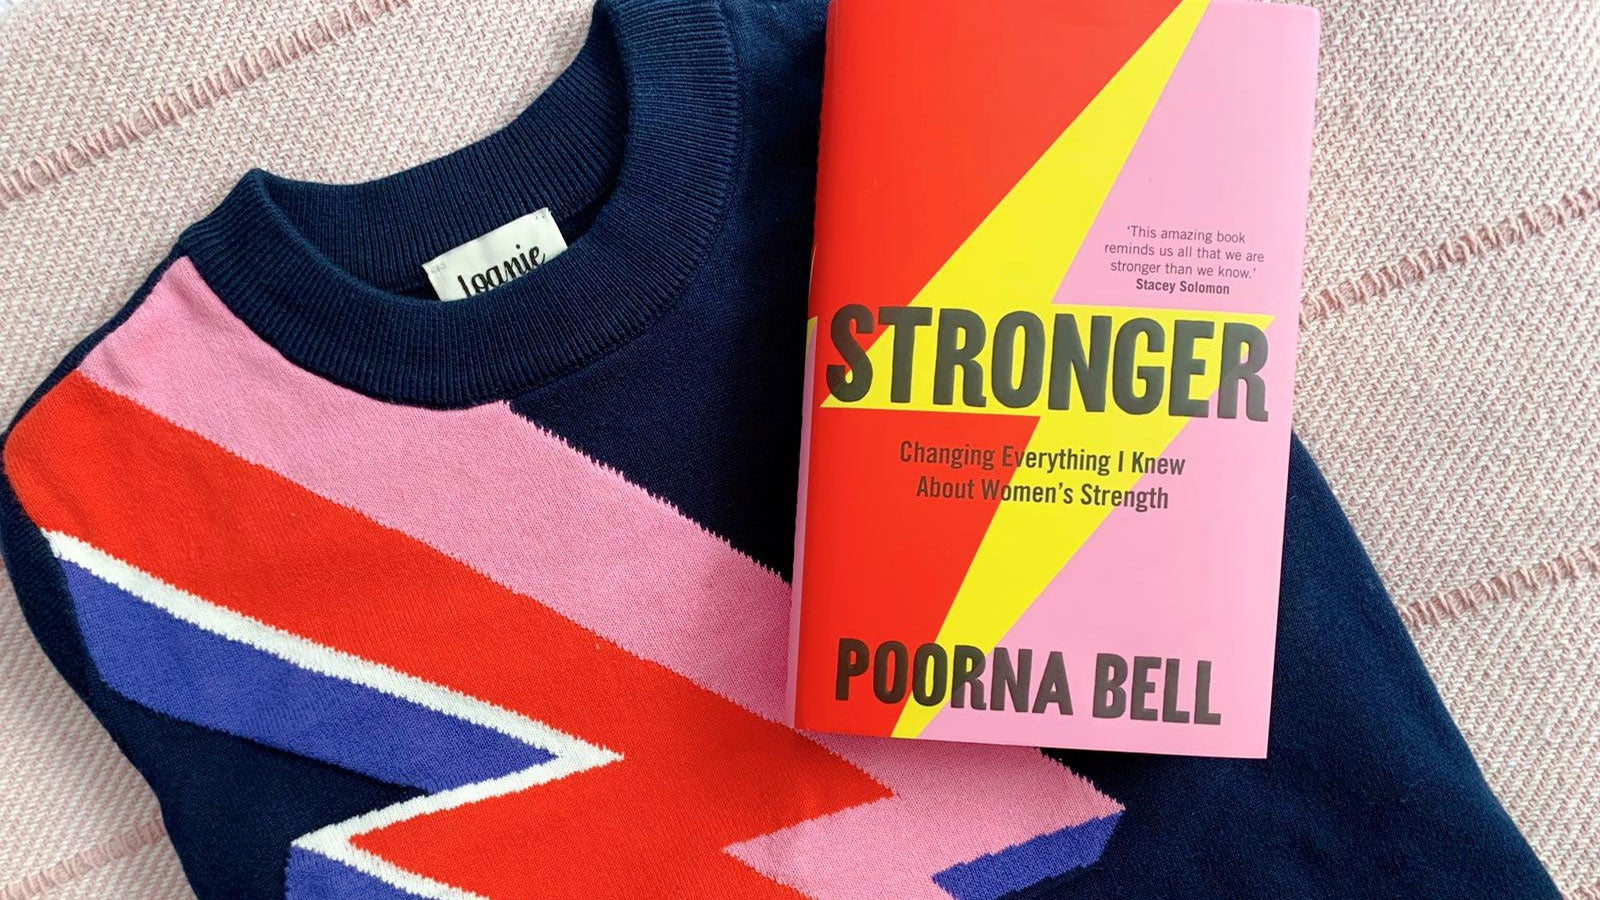 A copy of Poorna Bell's Stronger resting on a Joanie Clothing 'Kim Lightning Bolt Intarsia Jumper' on a striped bedspread.